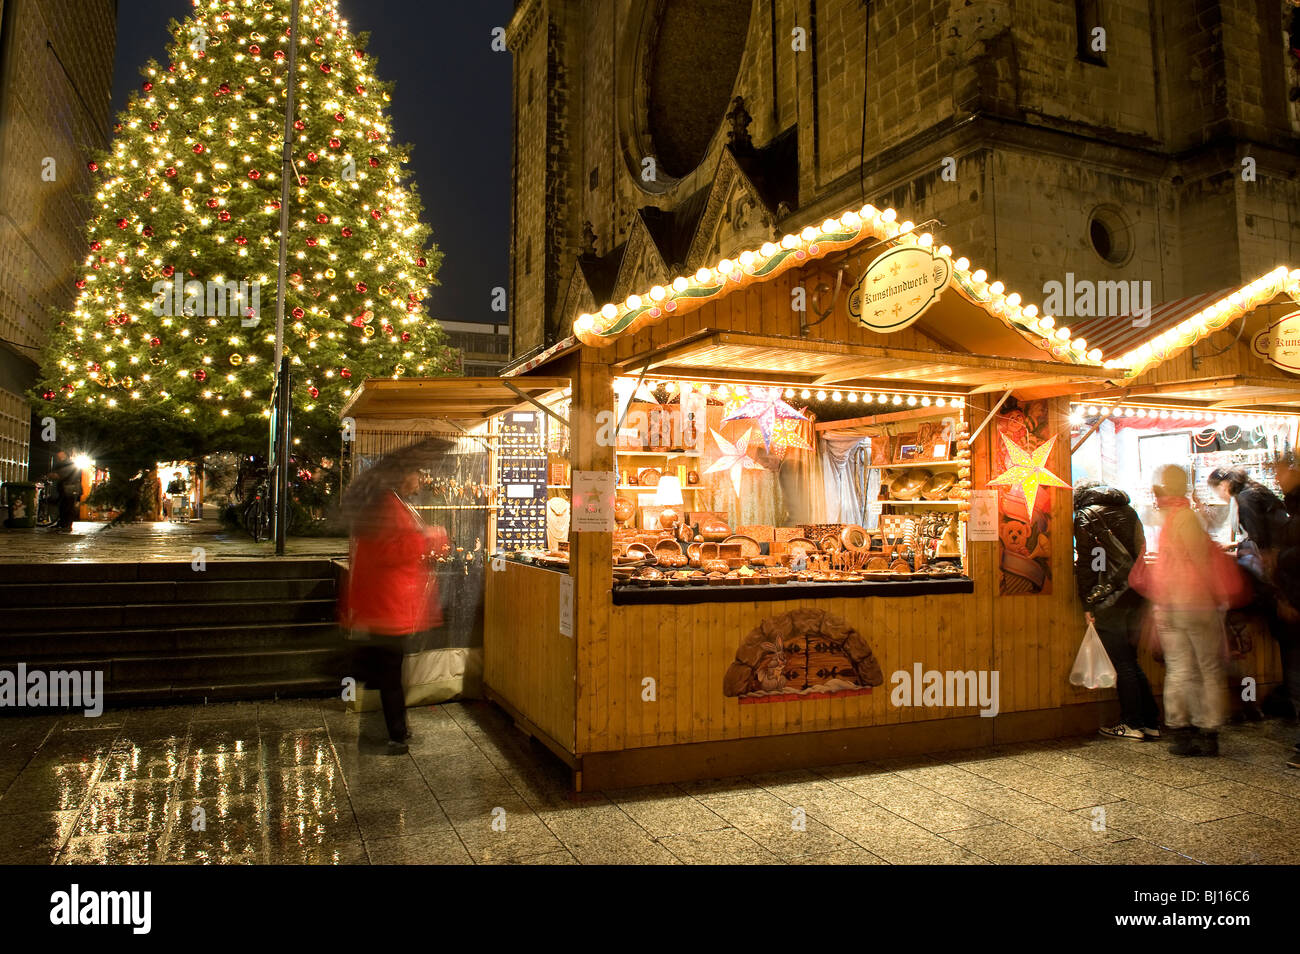 Christmas Markets Kurfurstendamm Berlin Germany - Stock Image